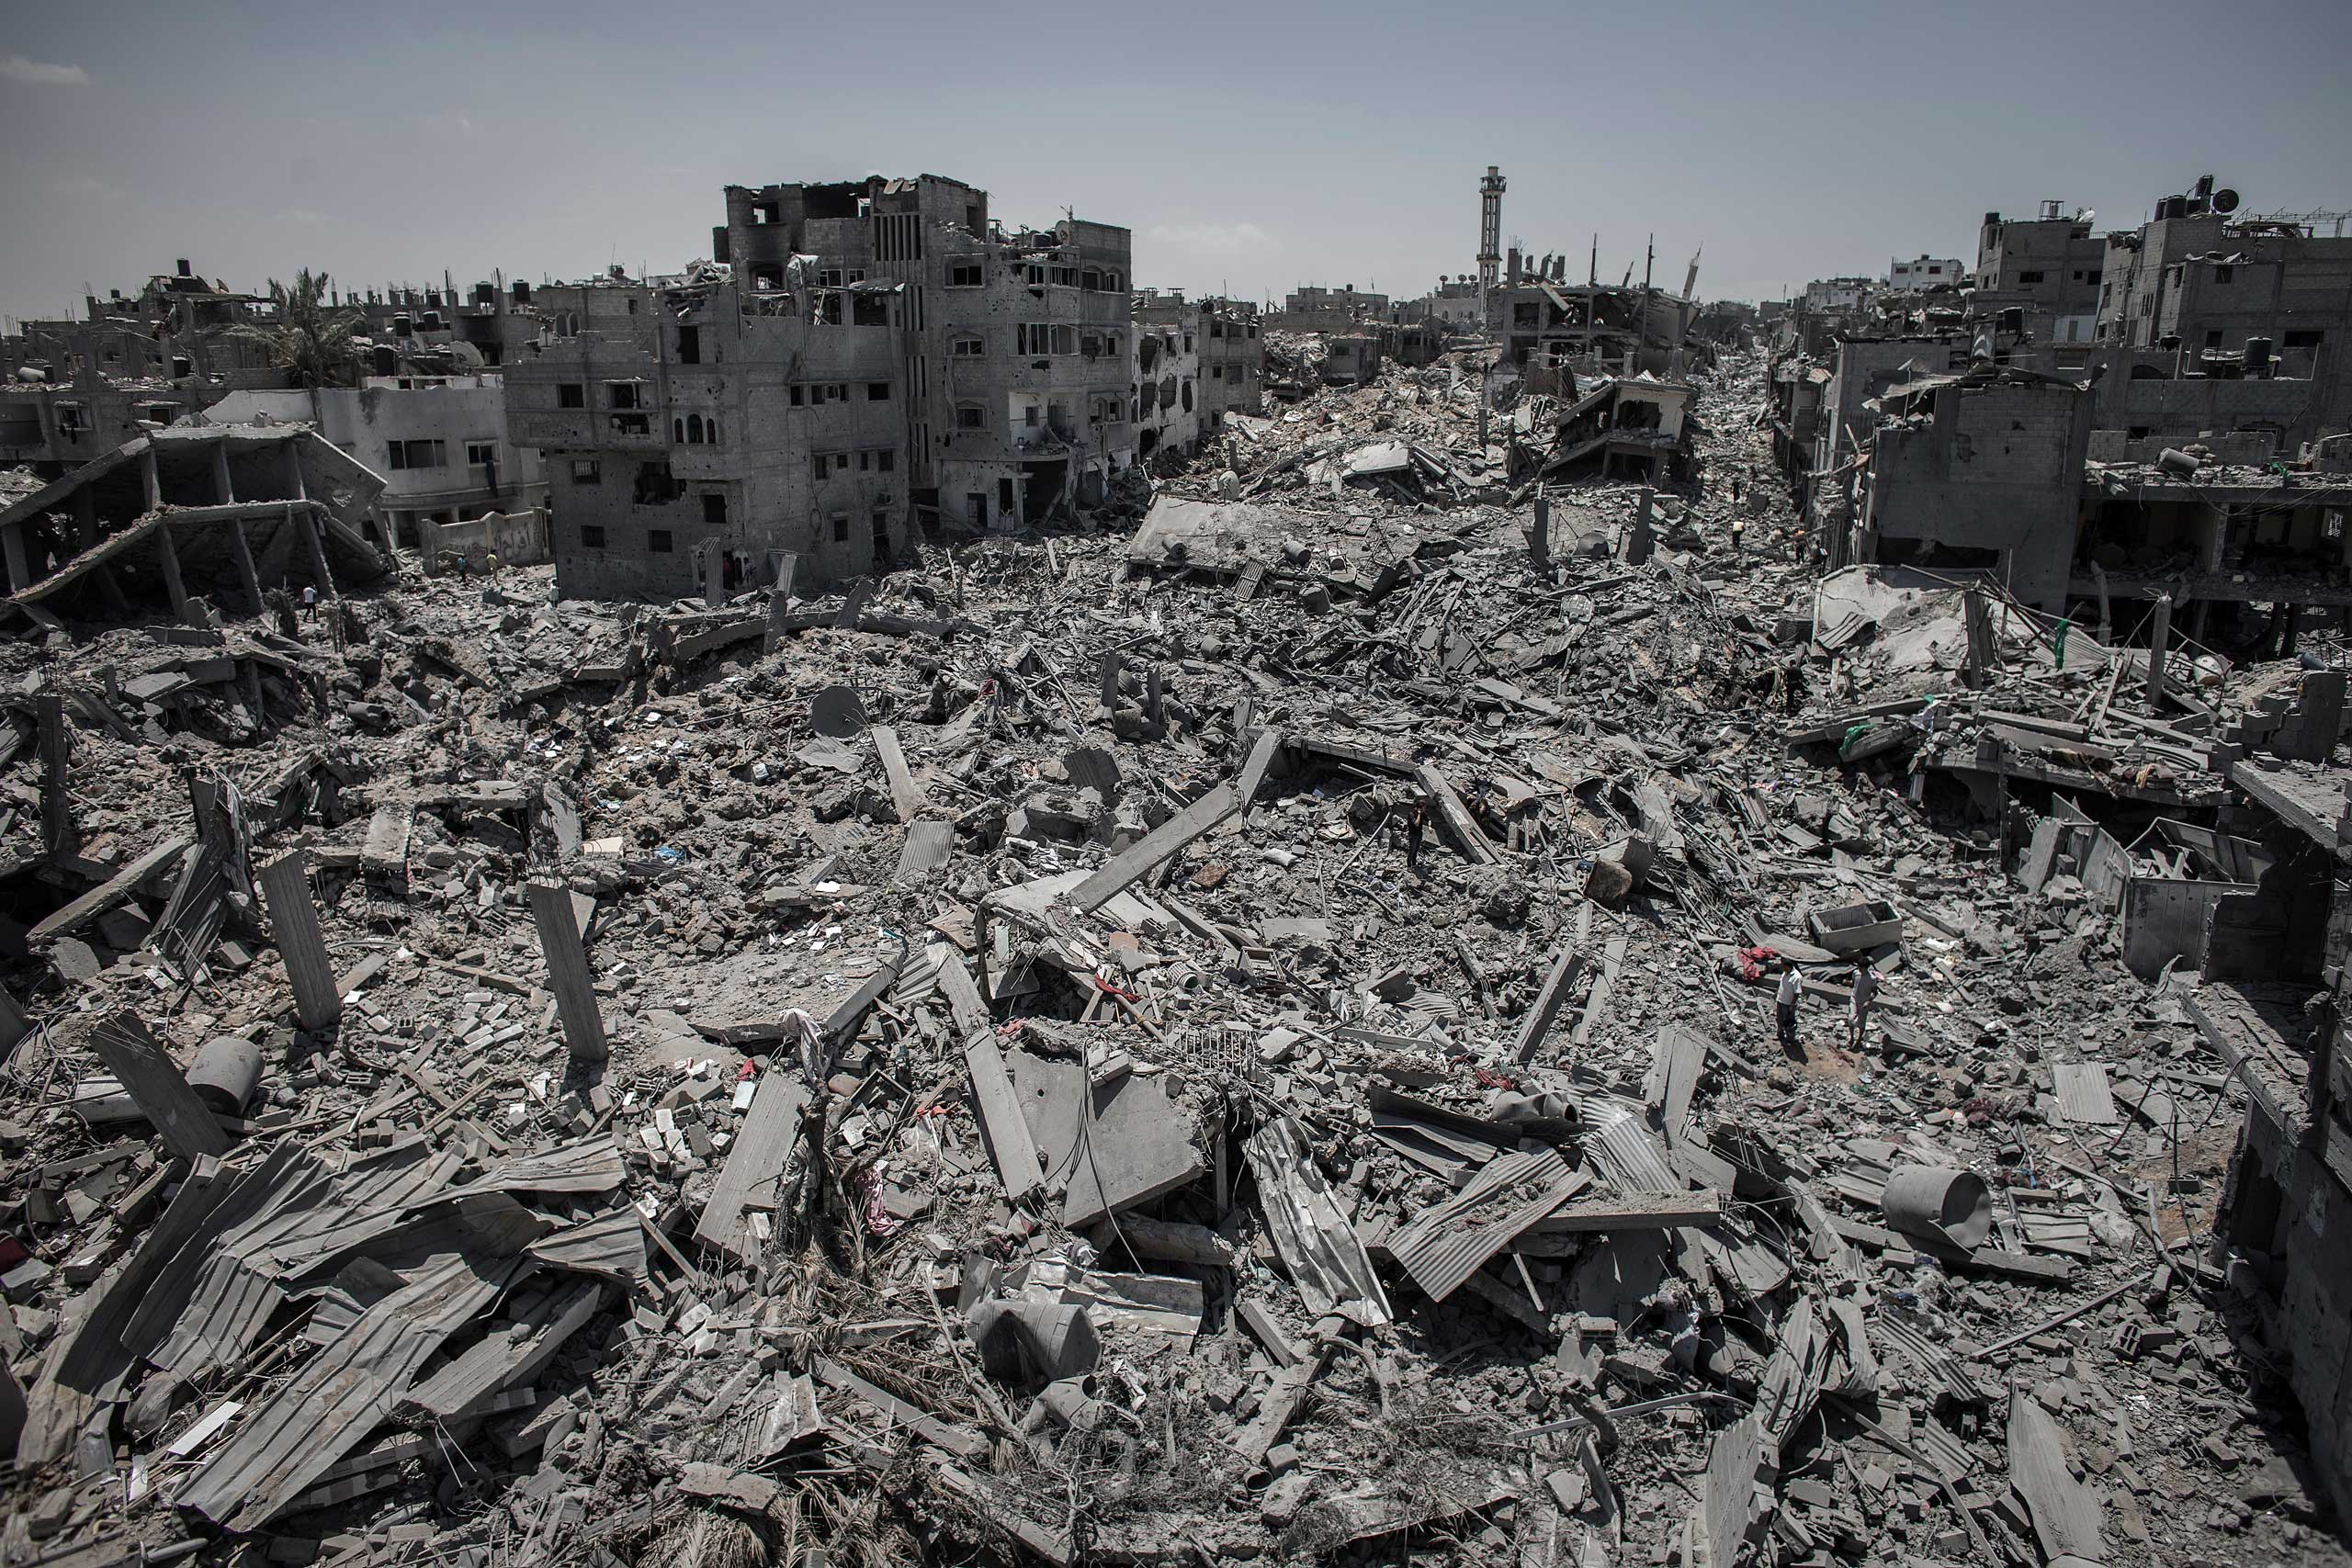 A general view of destroyed buildings after Israeli attacks in a part of Shejaiya, in east Gaza City, July 26, 2014.